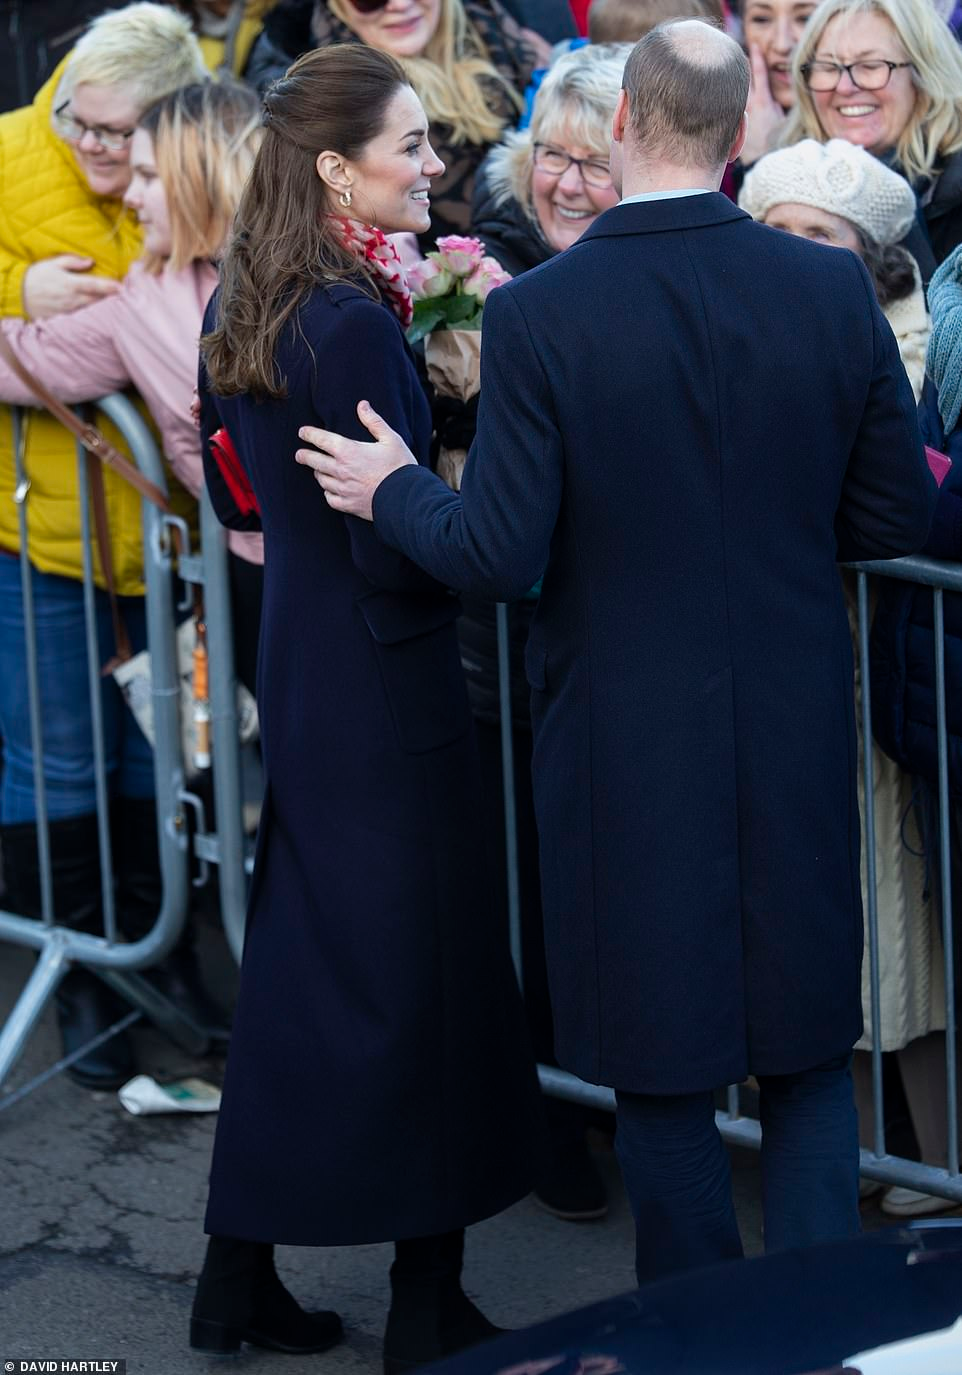 Kate Middleton And Prince William Arrive In South Wales En 2020 Duquesa Catherine Duque Principe